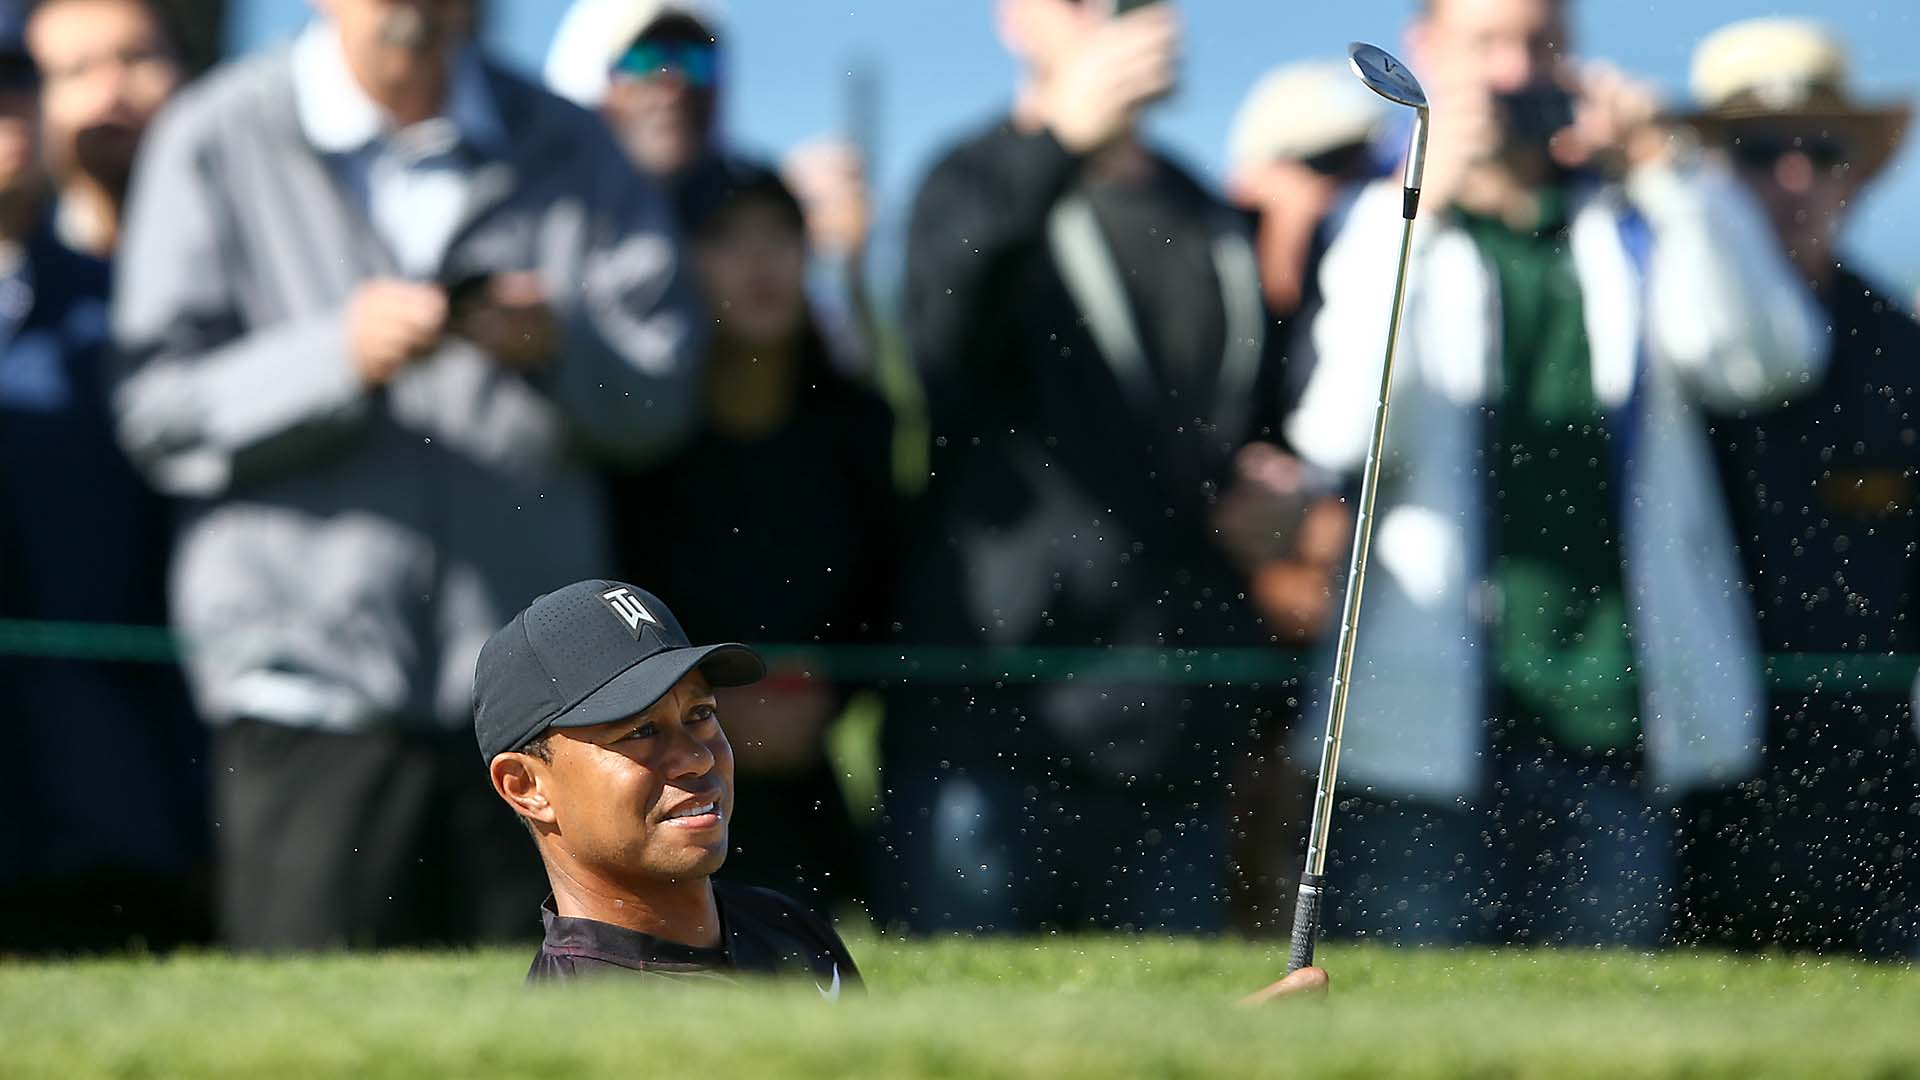 Tiger Woods timeline: Documenting three years of struggles